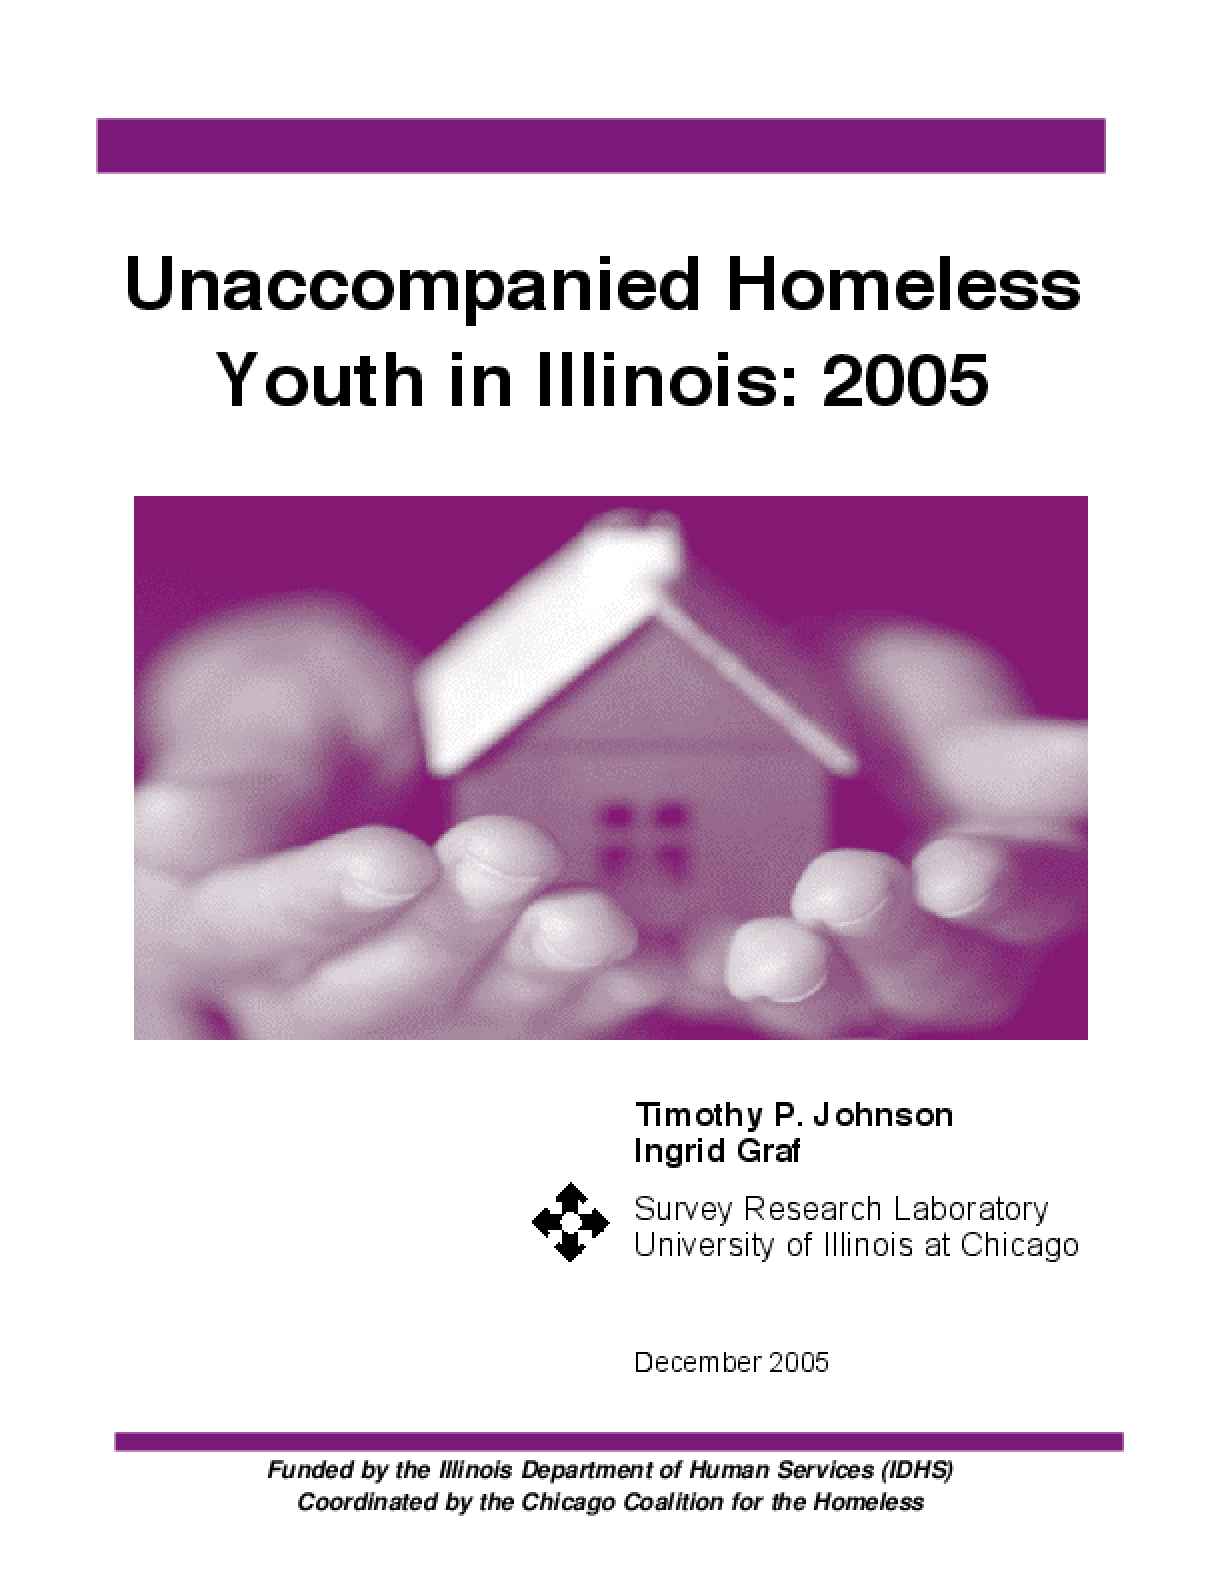 Unaccompanied Homeless Youth in Illinois: 2005